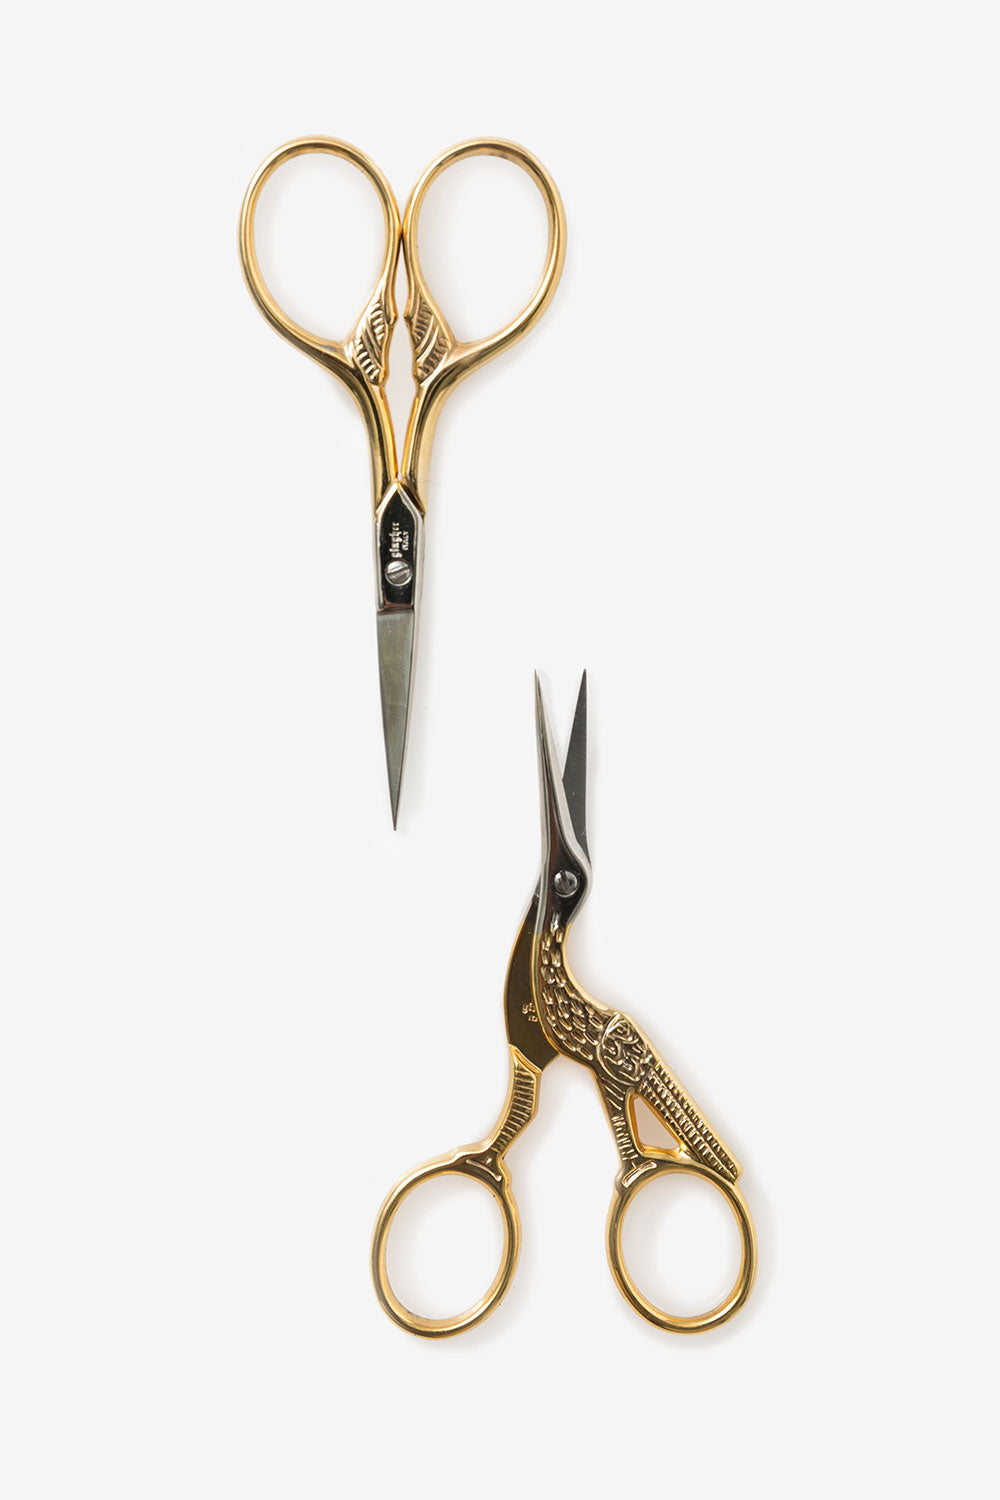 image of Gold-Handled Embroidery Scissors